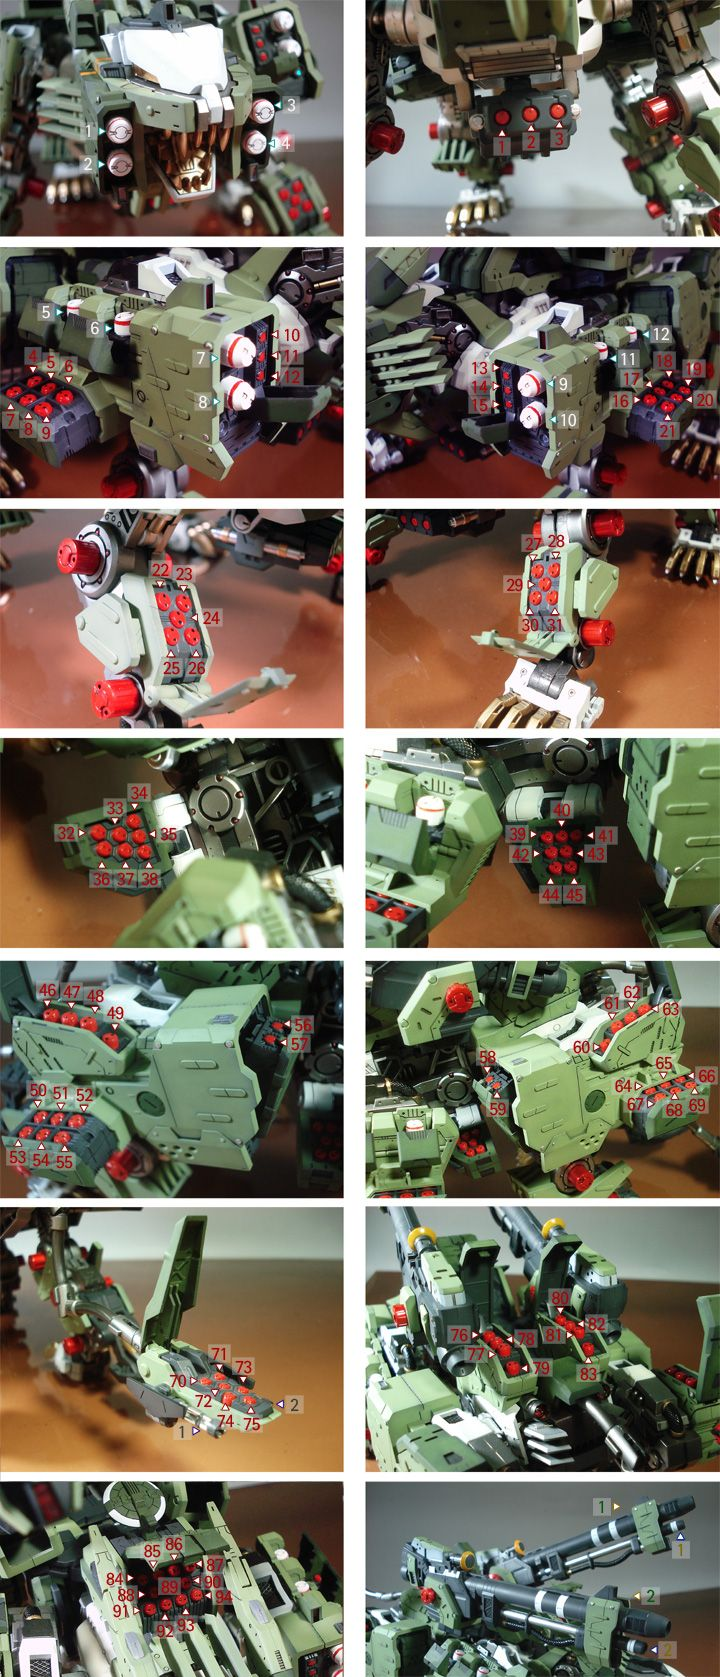 HMM Zoids 1/72 Rz-041 Liger Zero Panzer: Improved Work by KissBlue. Full Photoreview No.38 Big Size Images | GUNJAP